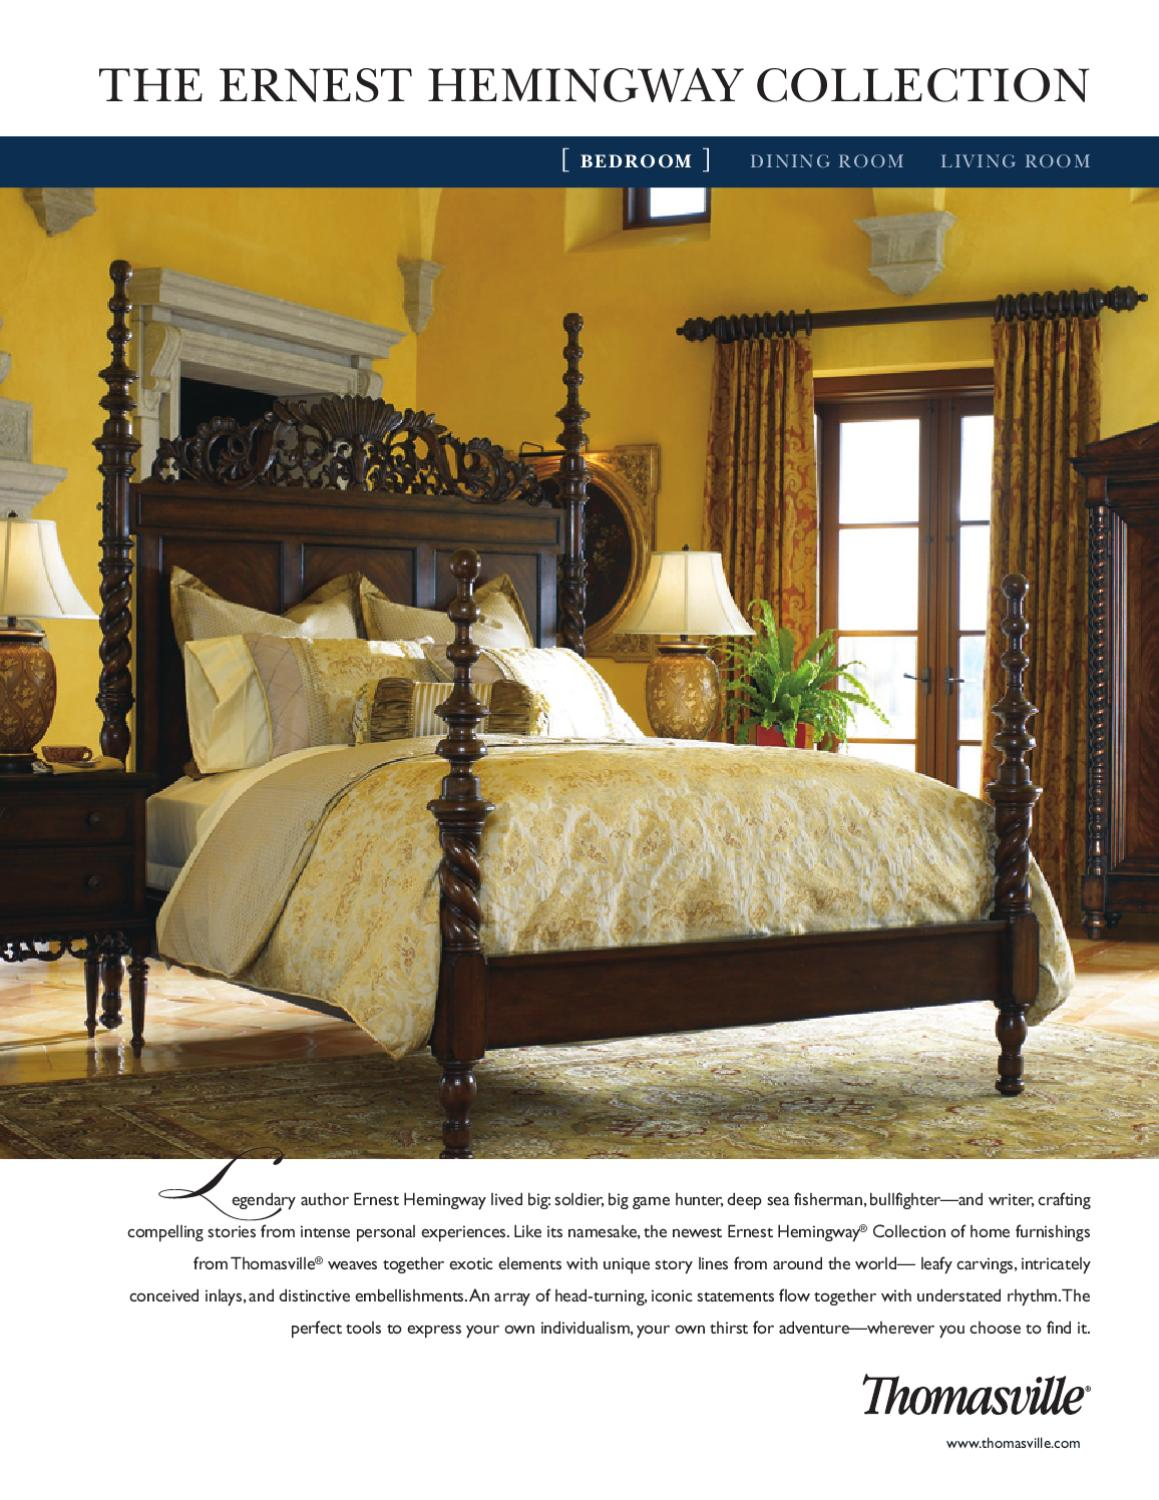 Amazing Thomasville  The Ernest Hemingway Collection (Bedroom) By Cadieux U0026 Company    Issuu